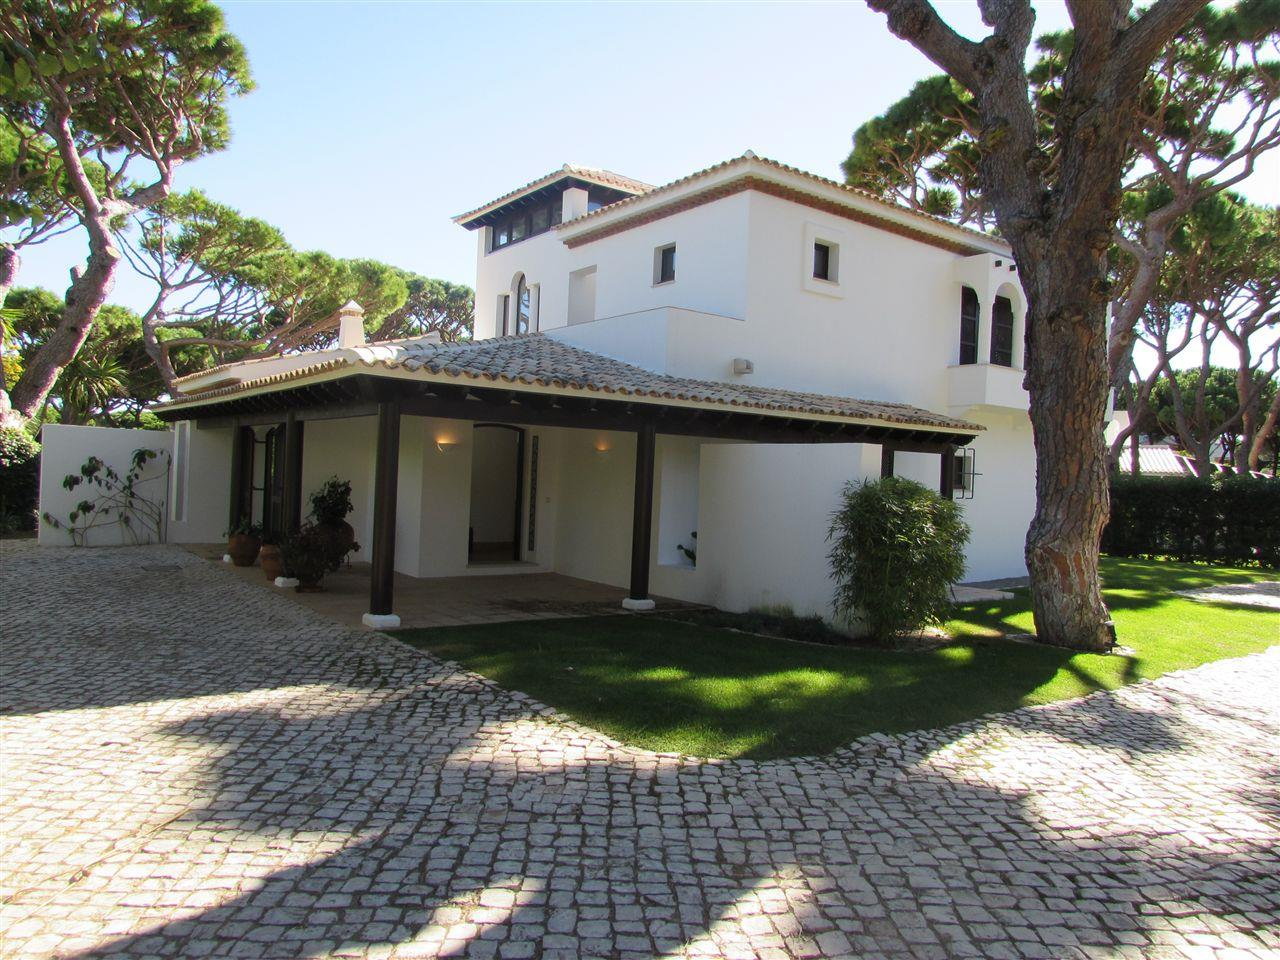 Maison unifamiliale pour l Vente à Detached house, 4 bedrooms, for Sale Albufeira, Algarve, 8200- Portugal